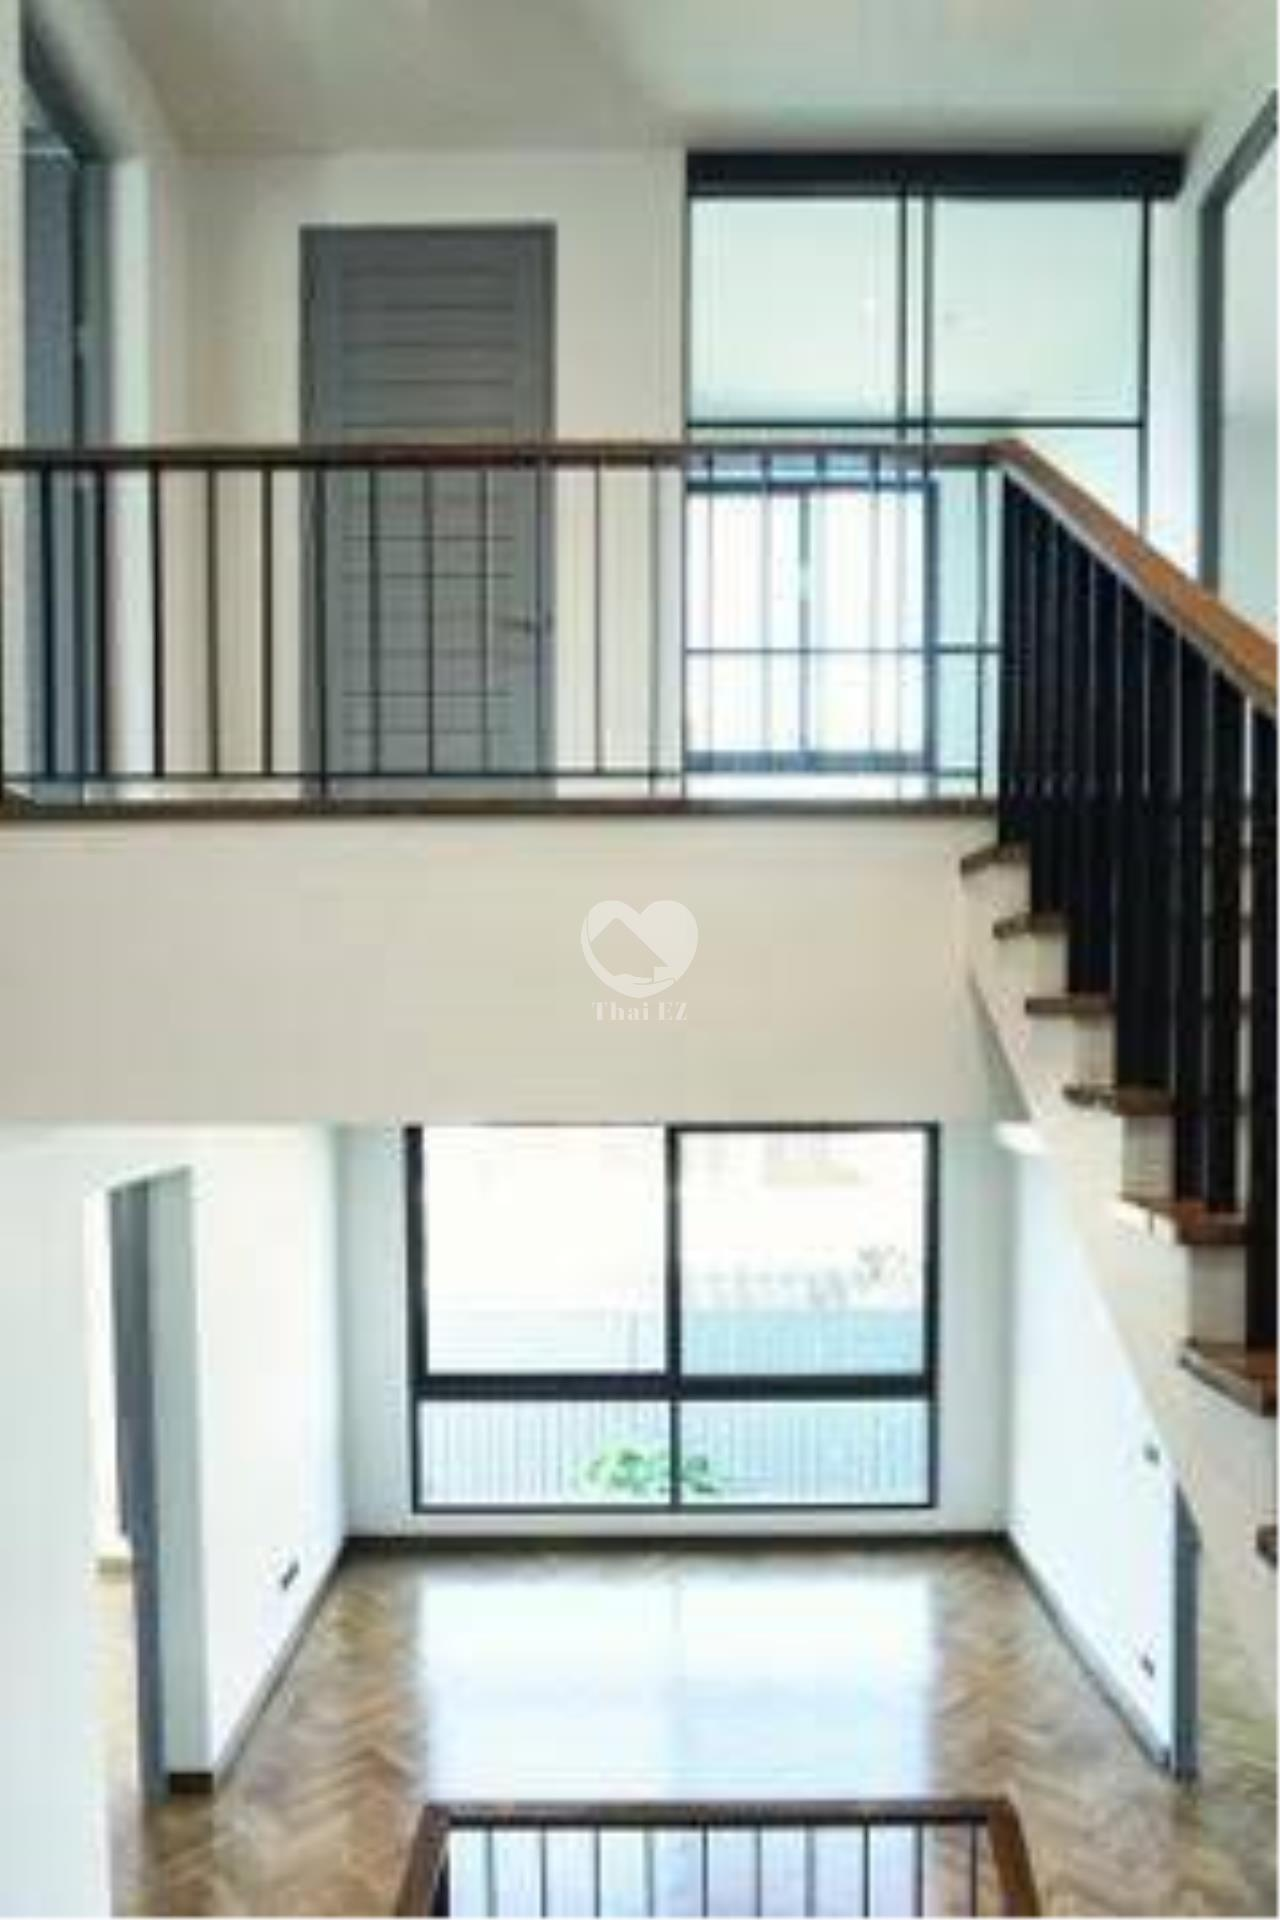 Thai EZ Agency's Brand New House for Sale - Thong Lor  17